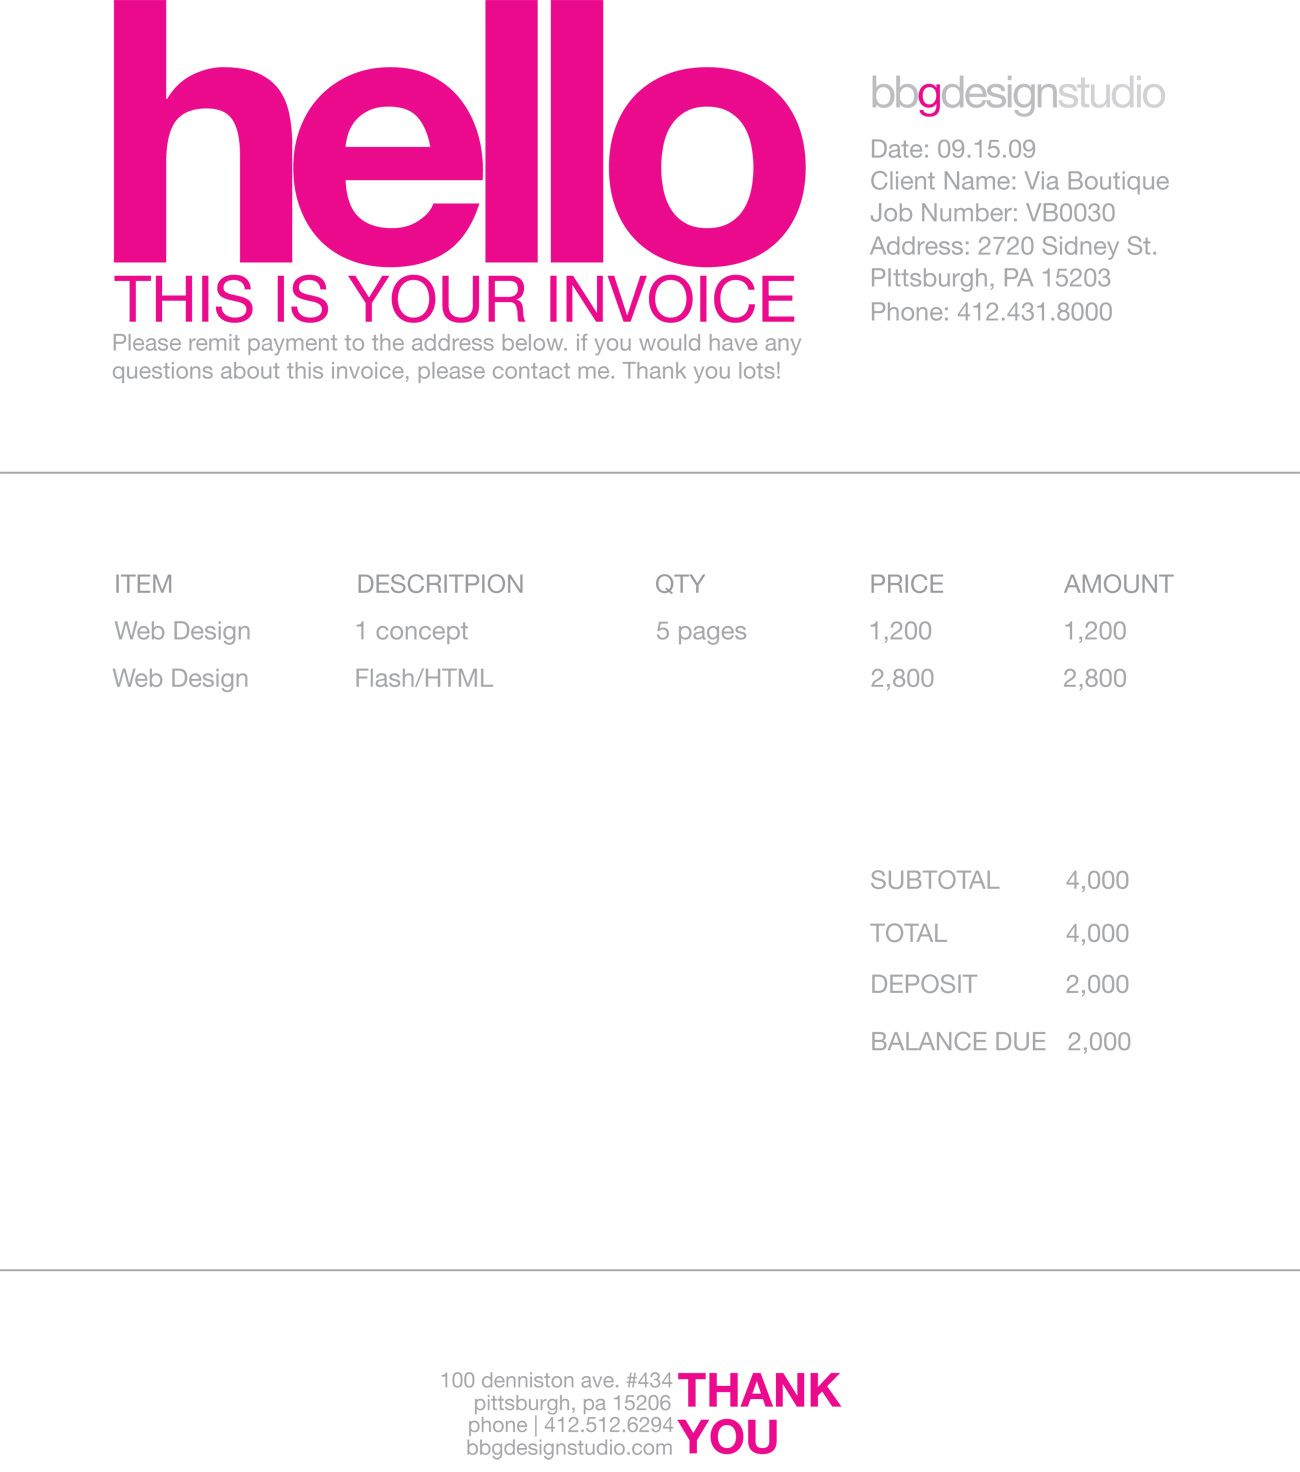 Coachoutletonlineplusus  Sweet  Images About Invoice Design On Pinterest With Lovely Invoice Wiki Besides Invoice Fraud Furthermore Create Invoices Free With Lovely Invoice For Contract Work Also Past Due Invoice Template In Addition Invoice Numbering And Invoice To As Well As Factor Invoices Additionally Hvac Invoice Forms From Pinterestcom With Coachoutletonlineplusus  Lovely  Images About Invoice Design On Pinterest With Lovely Invoice Wiki Besides Invoice Fraud Furthermore Create Invoices Free And Sweet Invoice For Contract Work Also Past Due Invoice Template In Addition Invoice Numbering From Pinterestcom